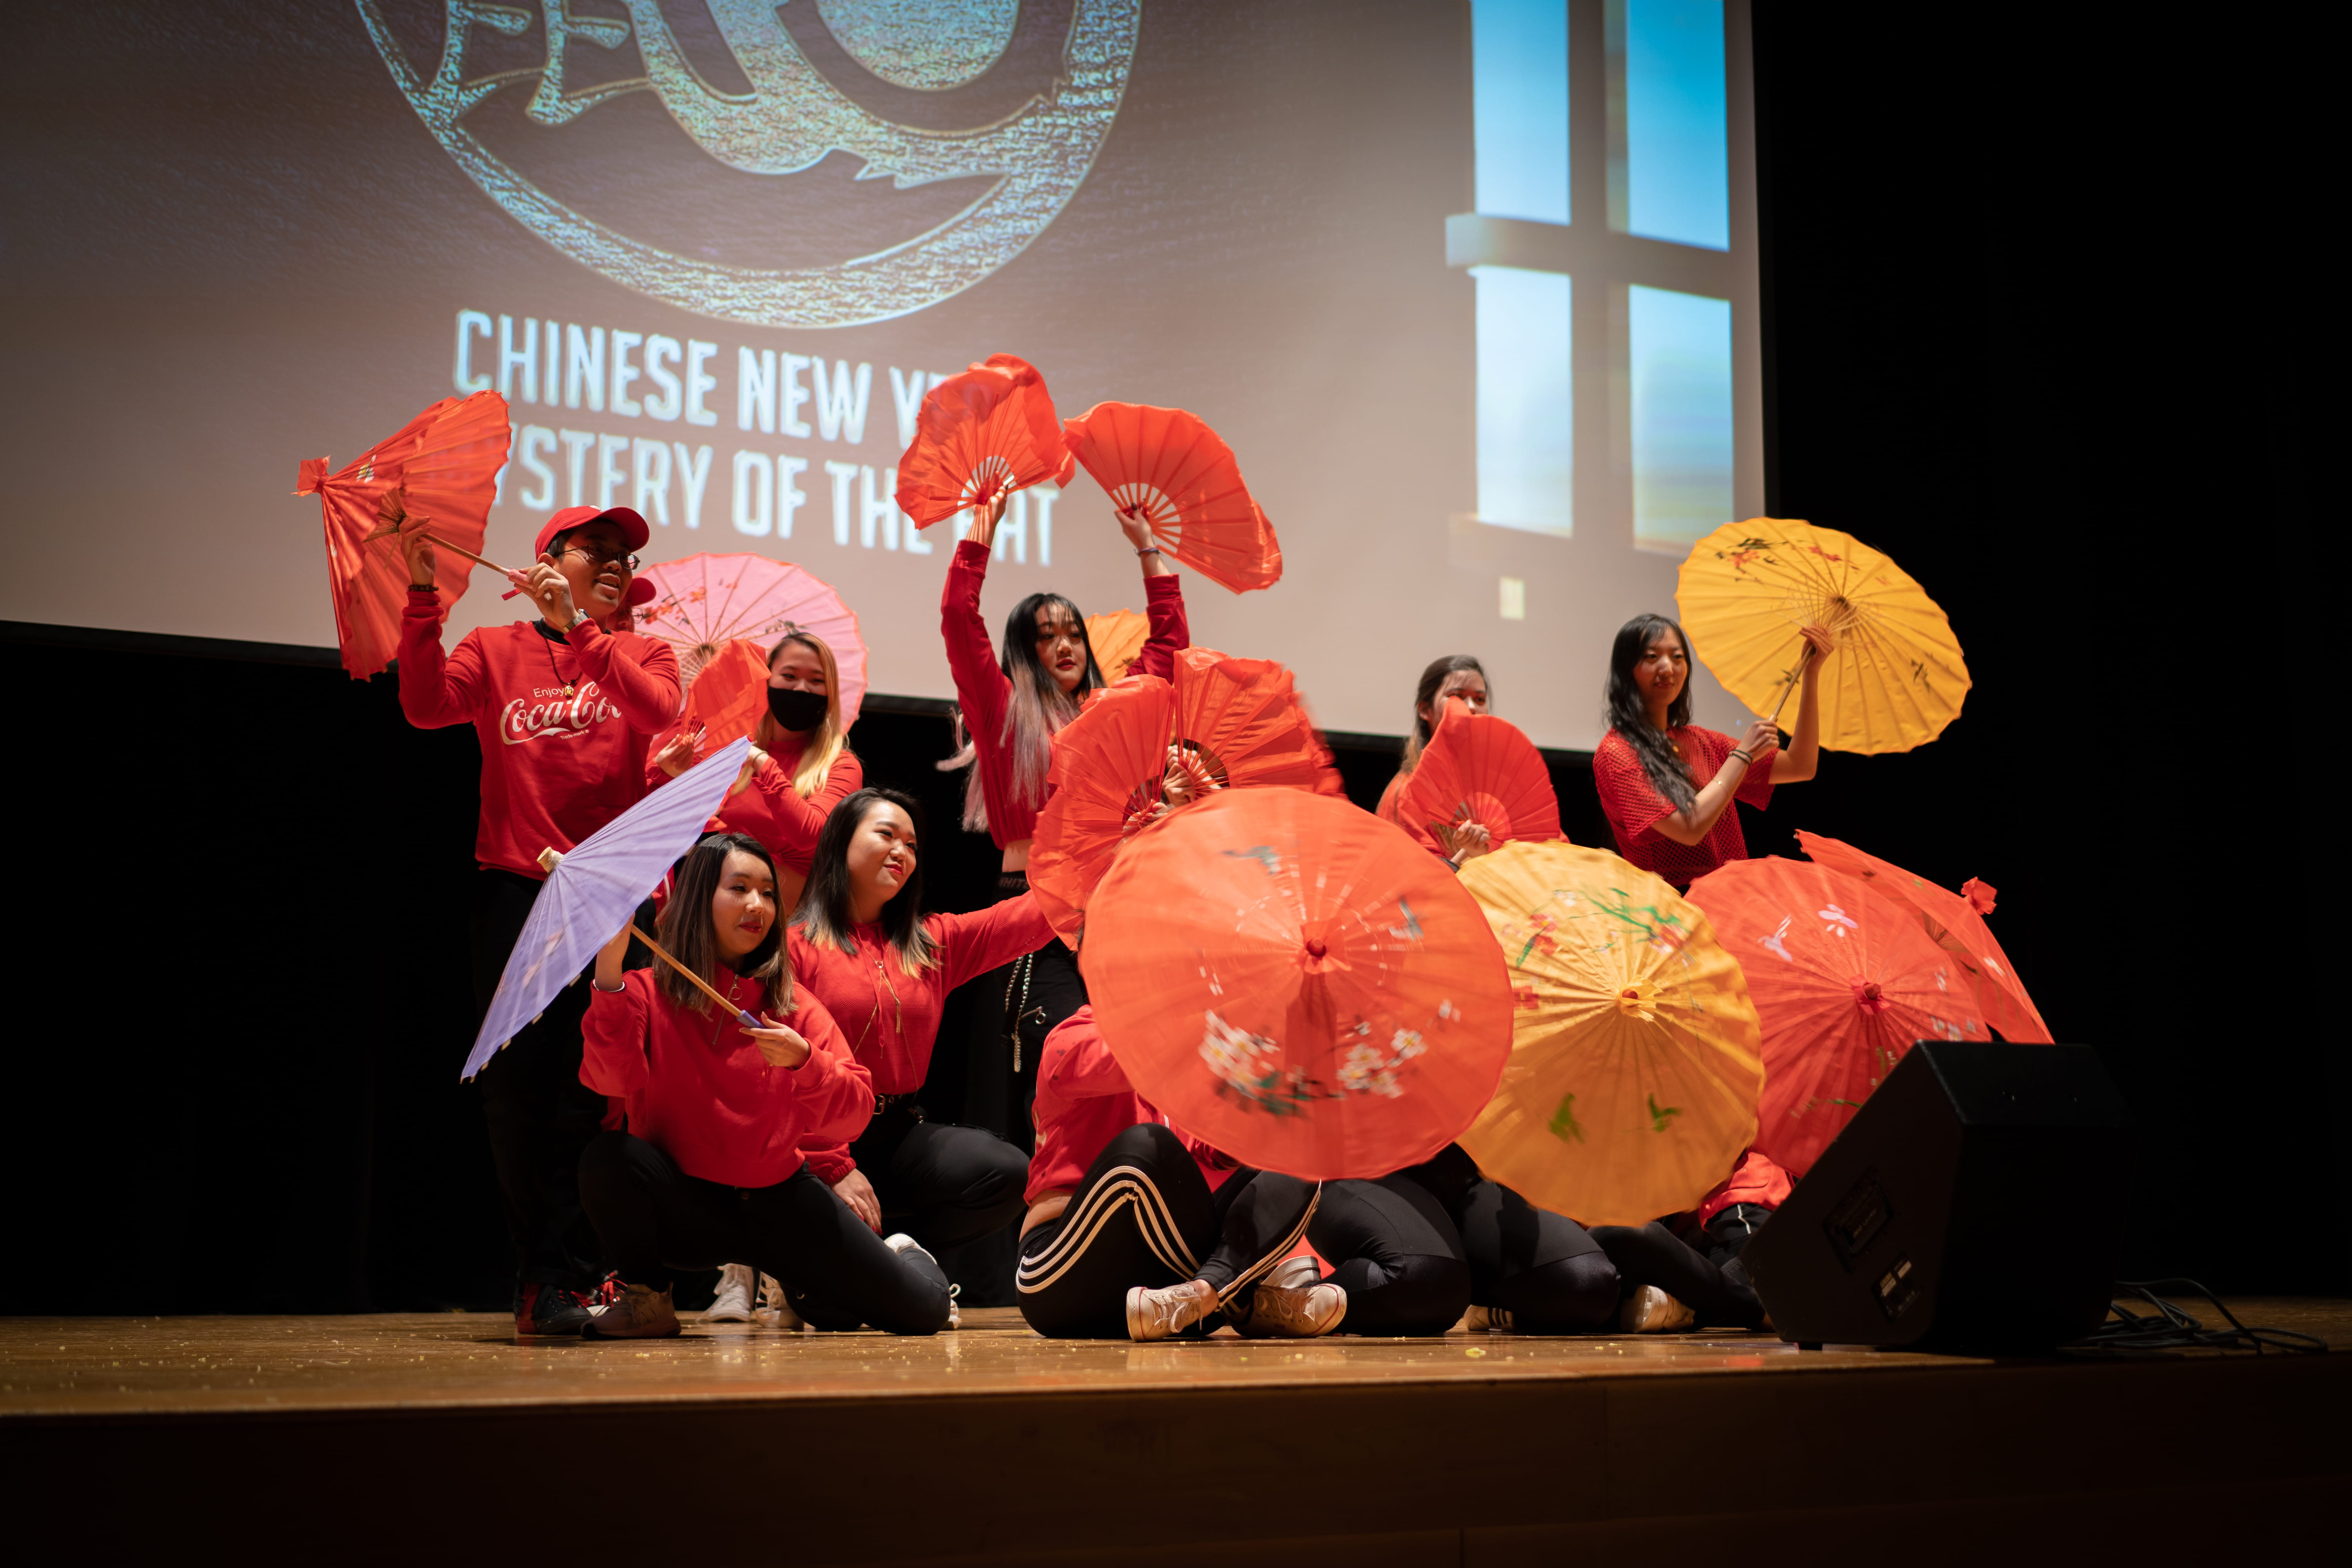 The Year of the Ox: How students are celebrating an untraditional Lunar New Year